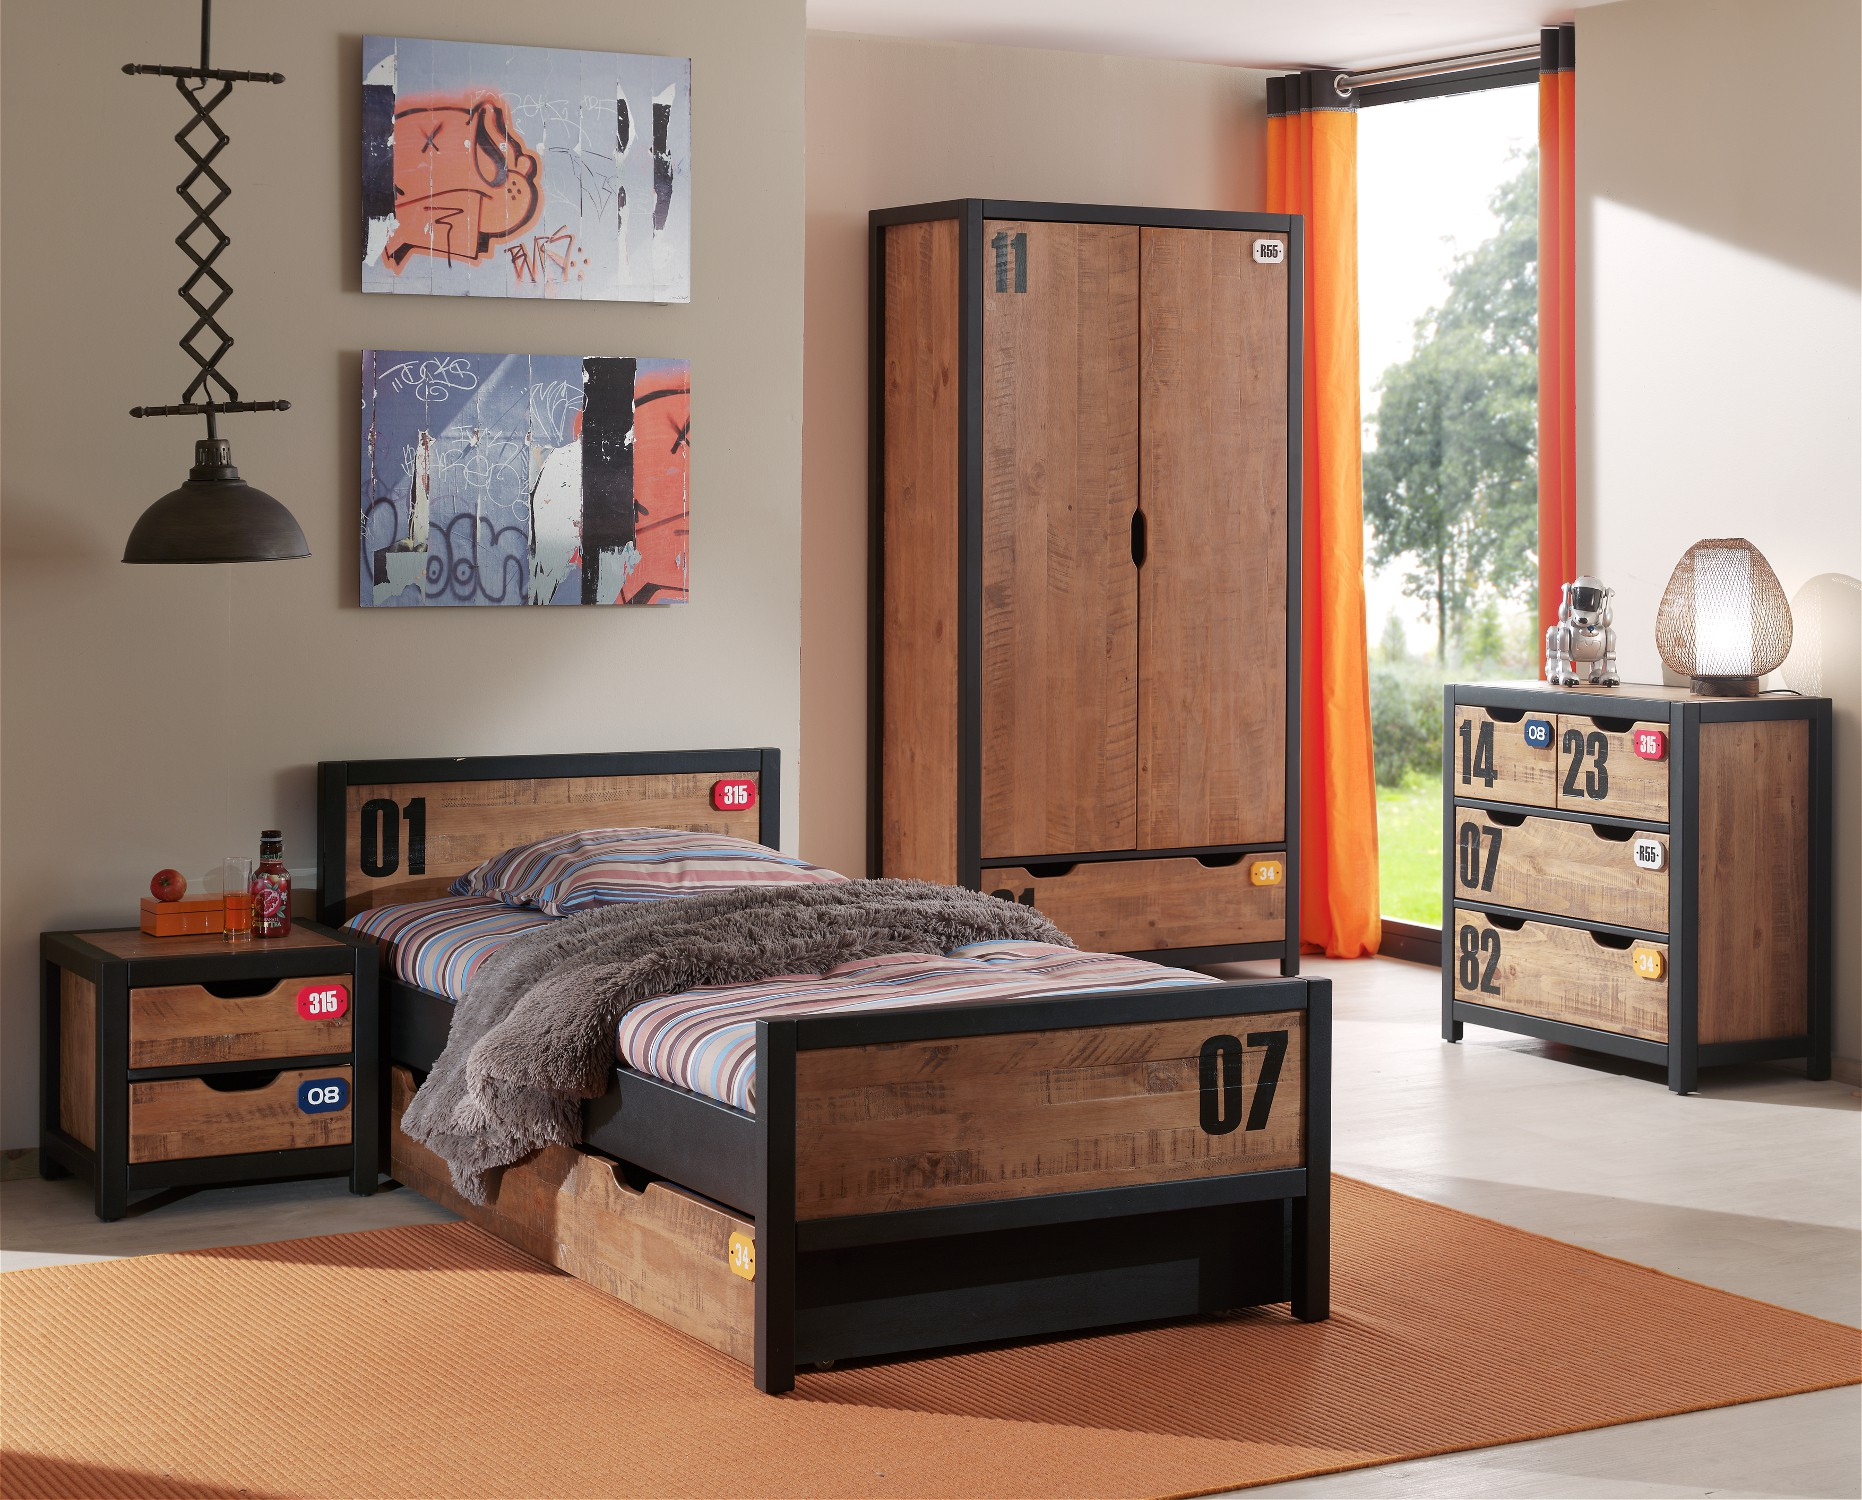 jugendzimmer alex komplett mit einzelbett bettschublade kleiderschrank 2 t rig nachtkonsole. Black Bedroom Furniture Sets. Home Design Ideas